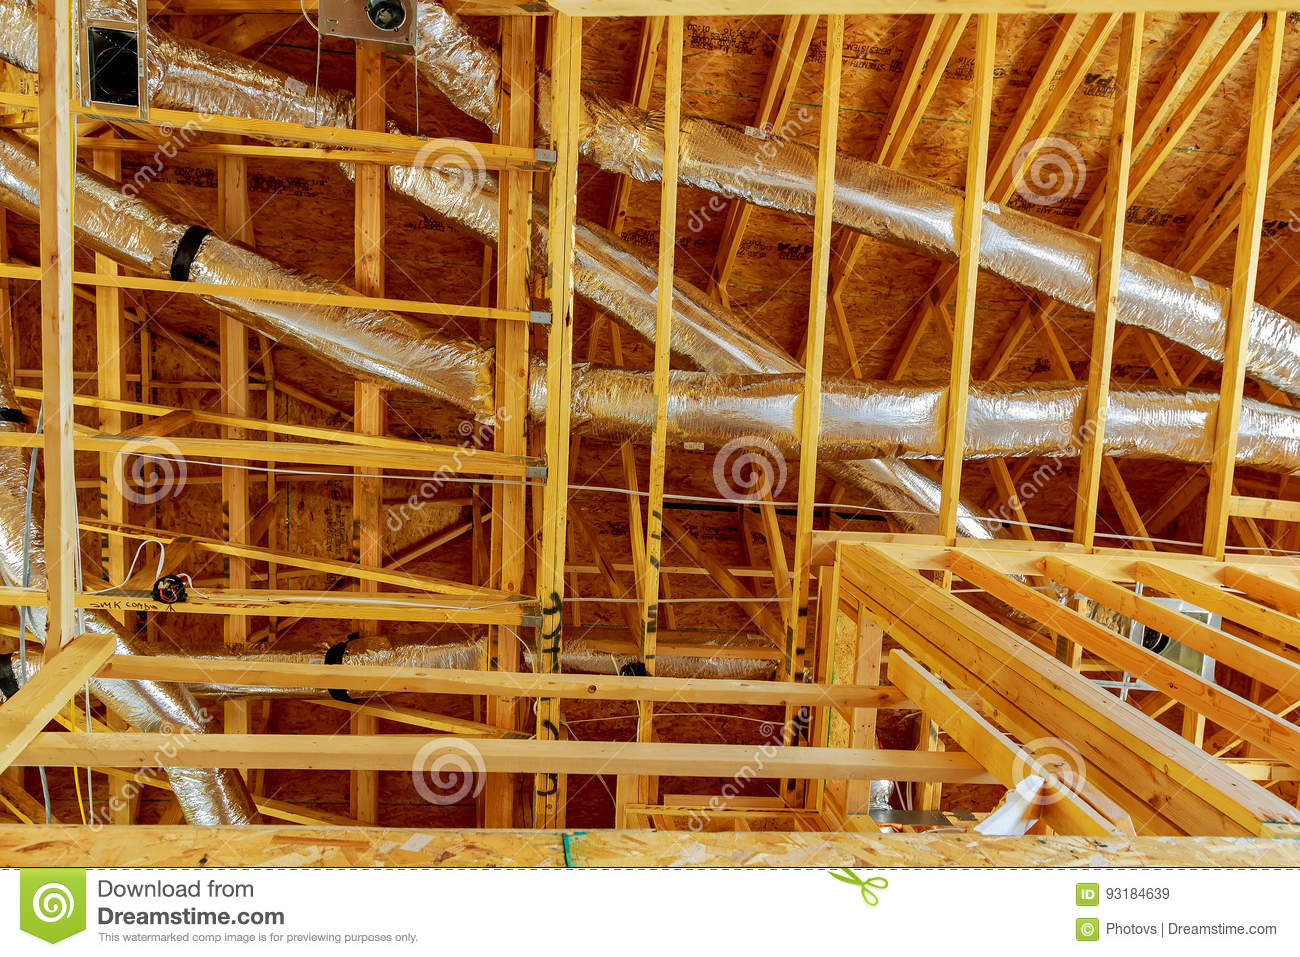 Electrical Wiring Royalty Free Stock Photos Image 31836348 Switch 10quot 1500w Active Powered Under Seat Car Subwoofer Sub Wire Kit Ebay Photo Of Cutter Electric Rh Dreamstime Com Beekeeping Pictures